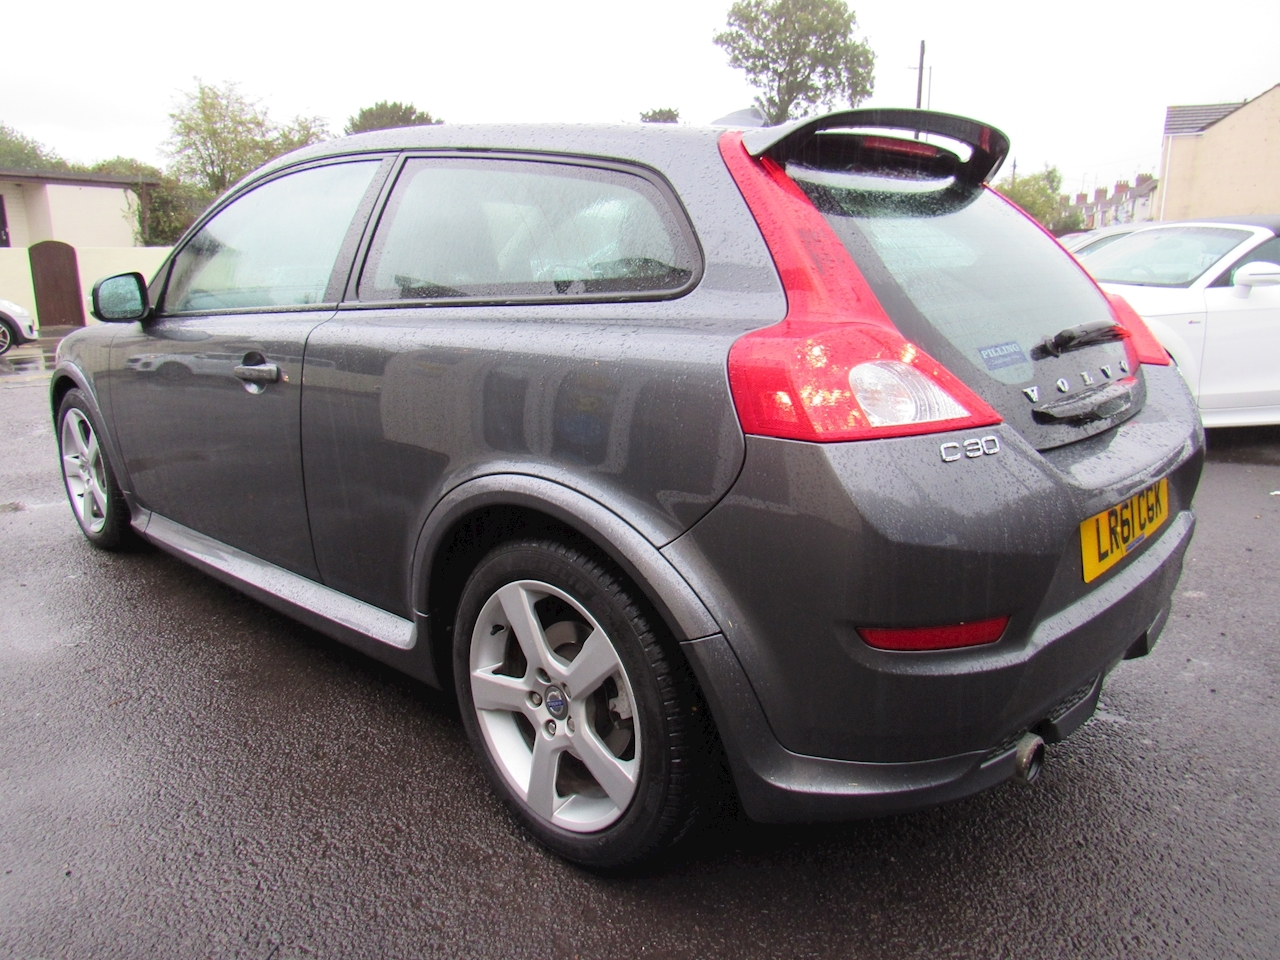 C30 R-Design Coupe 2.0 Manual Petrol